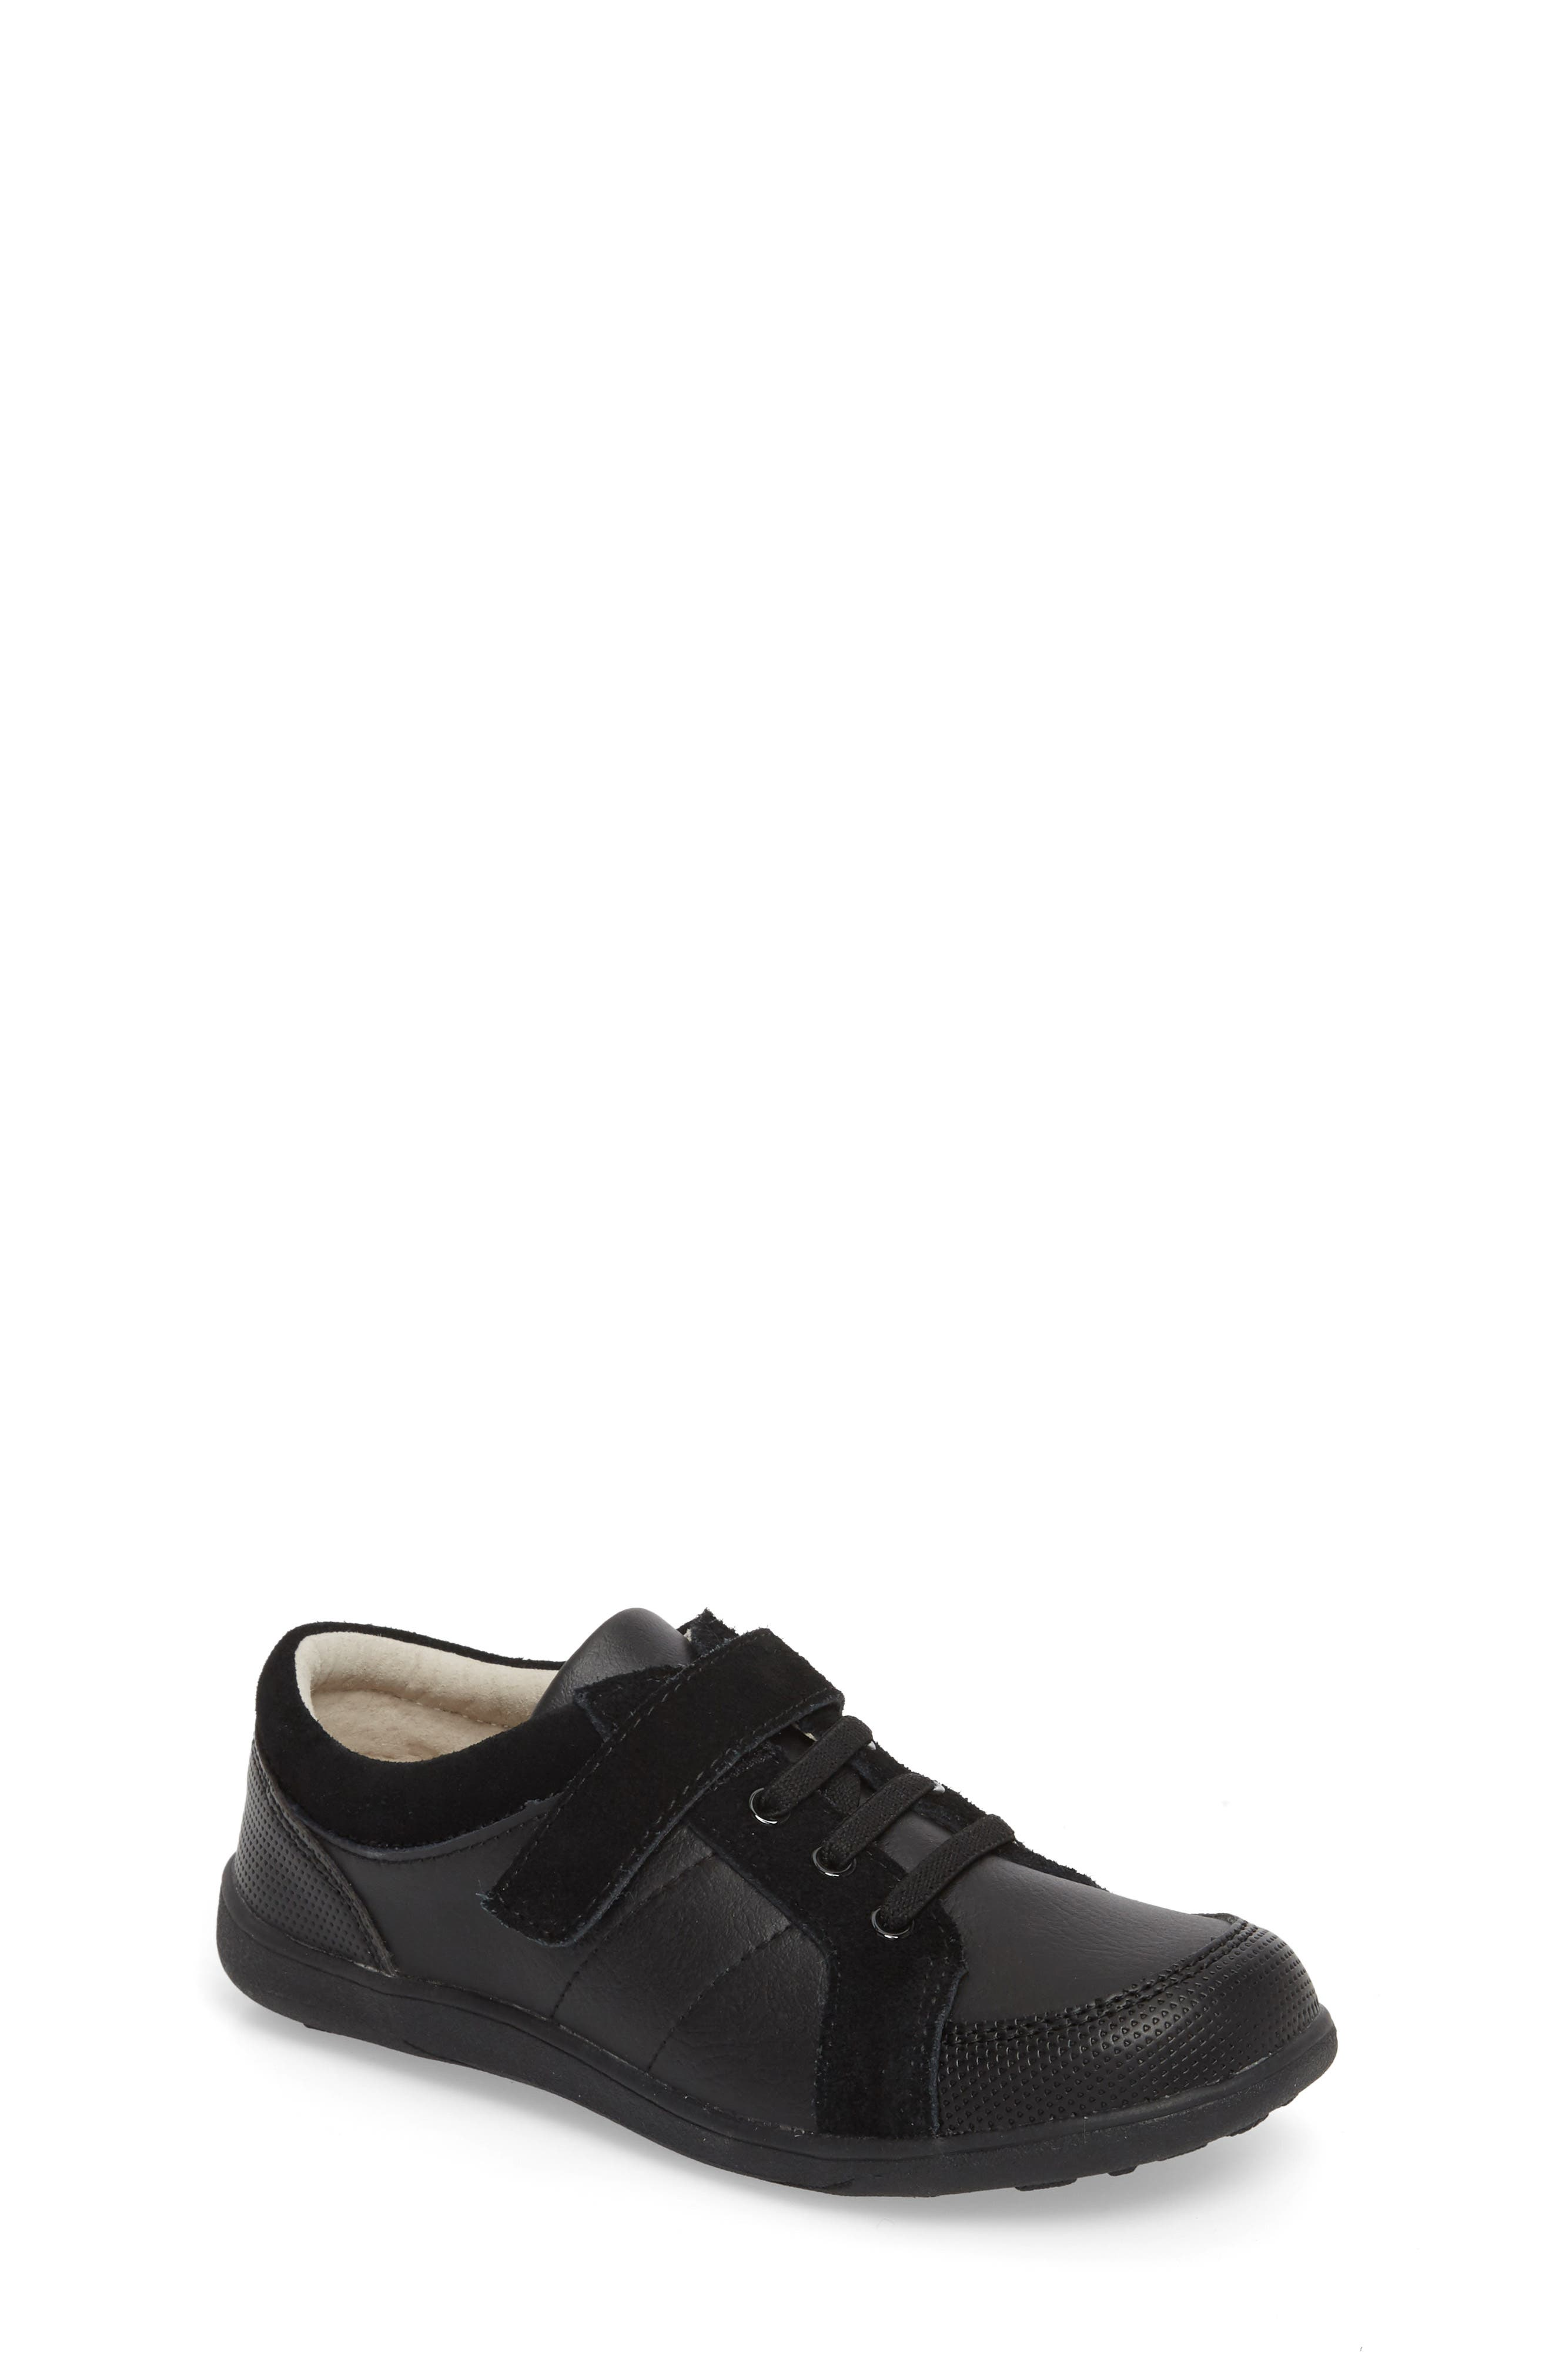 Randal III Sneaker,                             Main thumbnail 1, color,                             BLACK